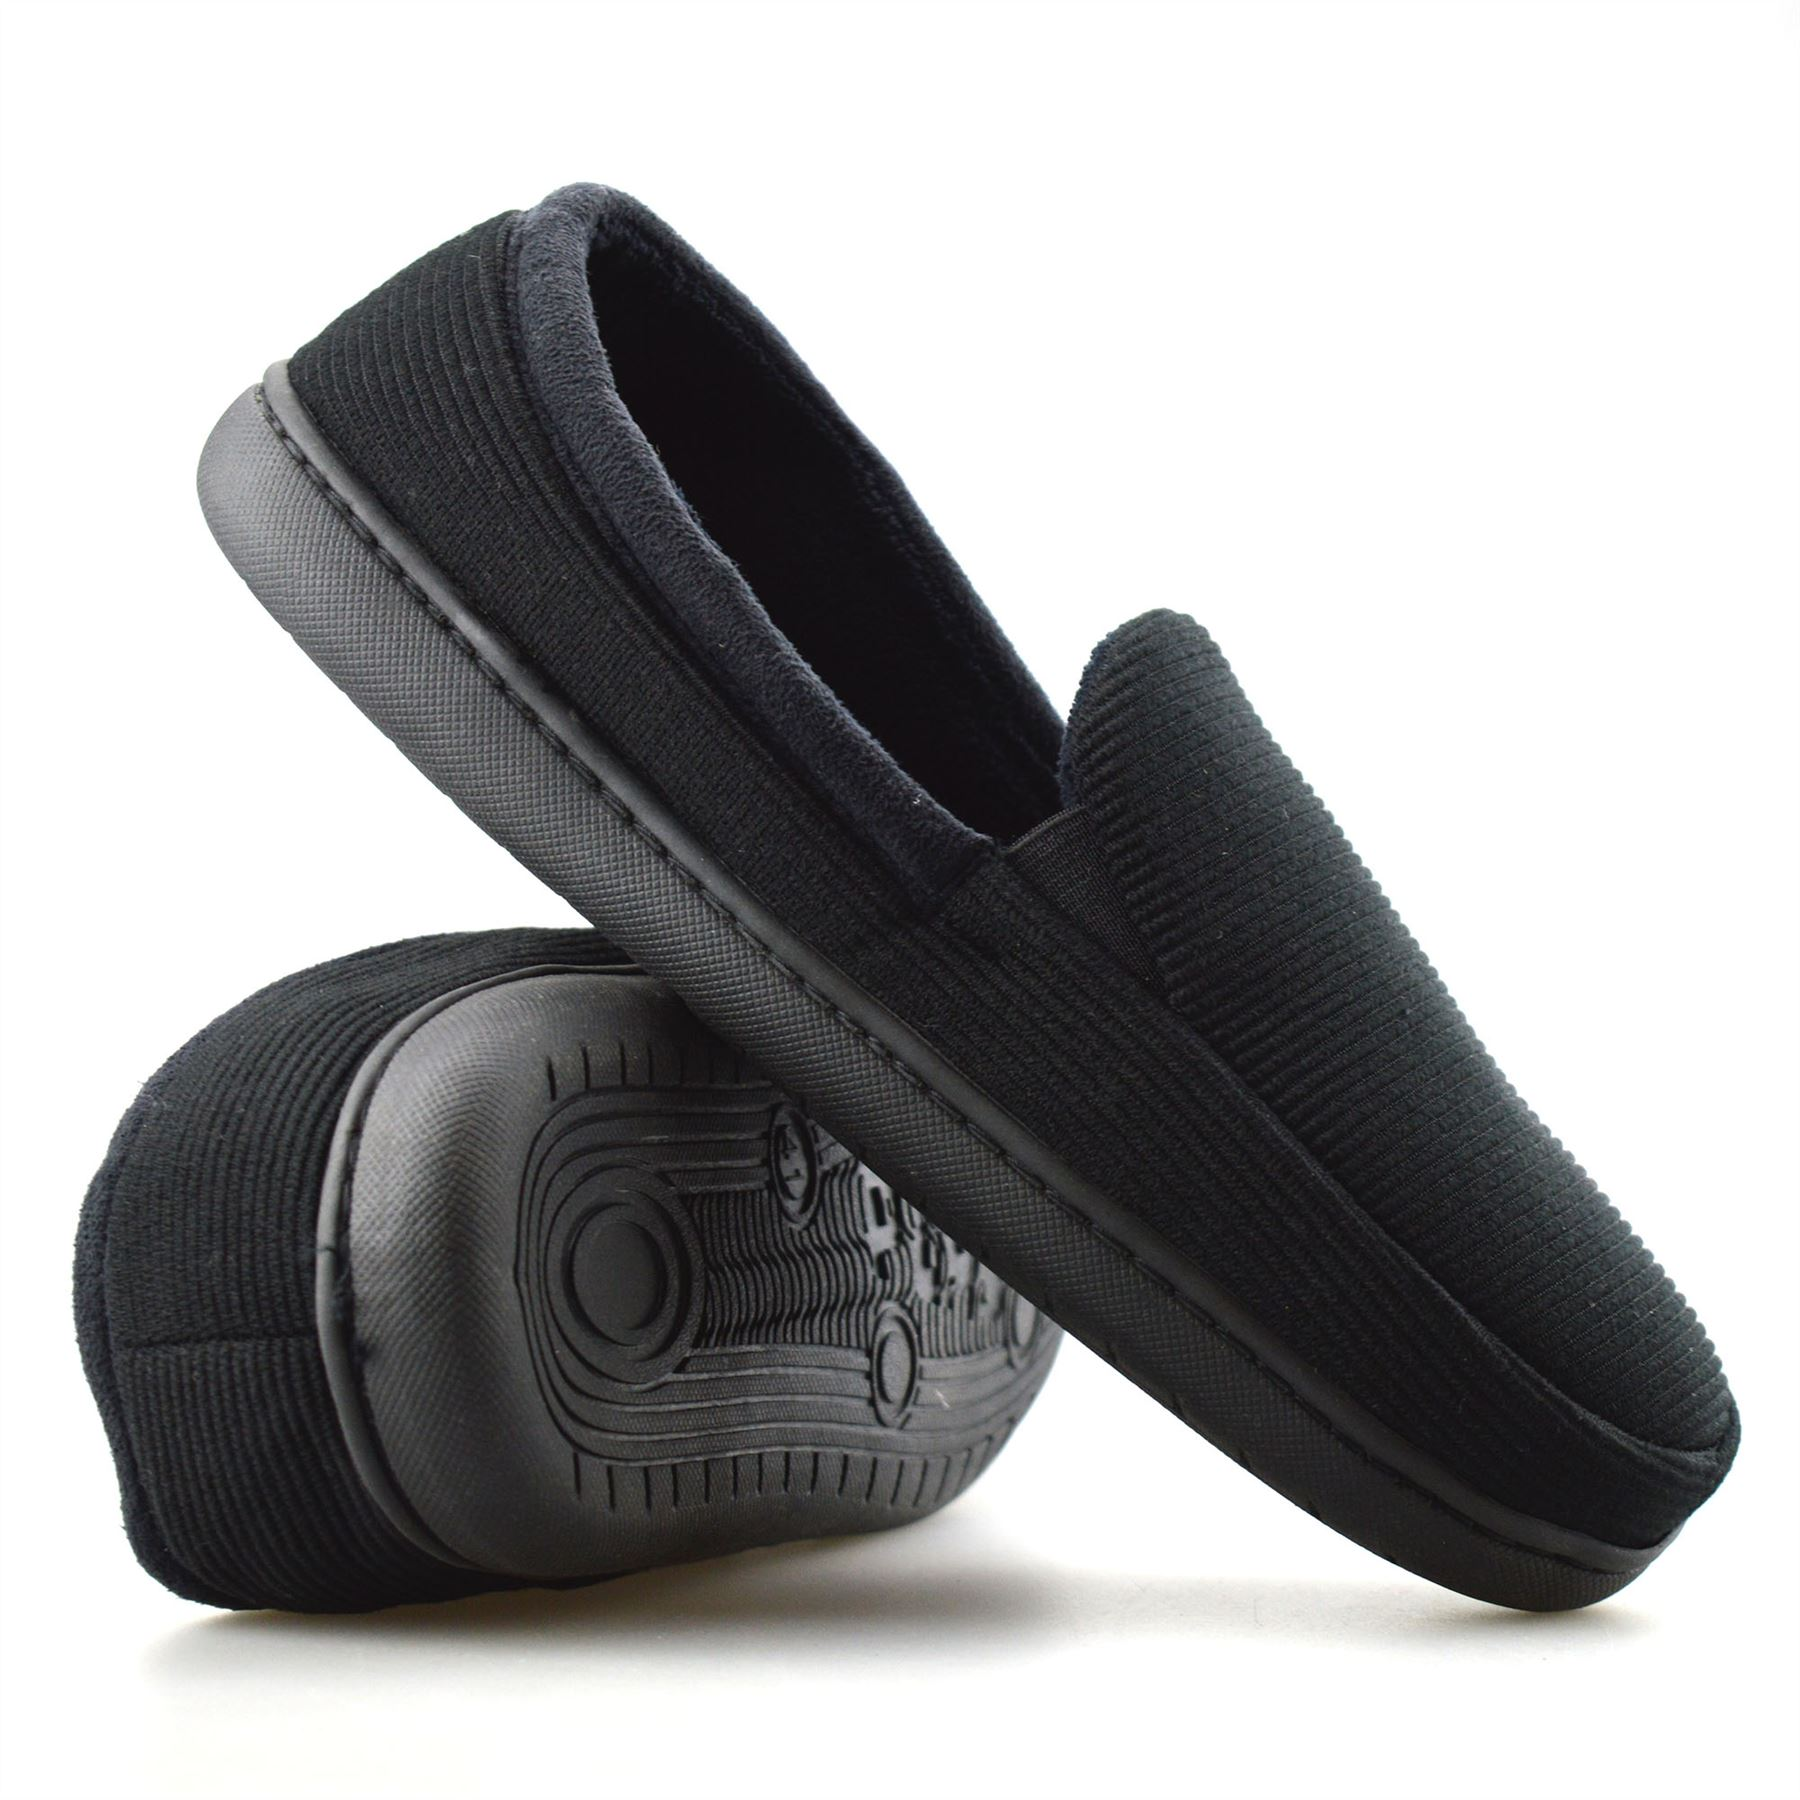 0d119cd315fba Mens New Slip On Soft Warm Lined Cord Winter Moccasin Slippers ...